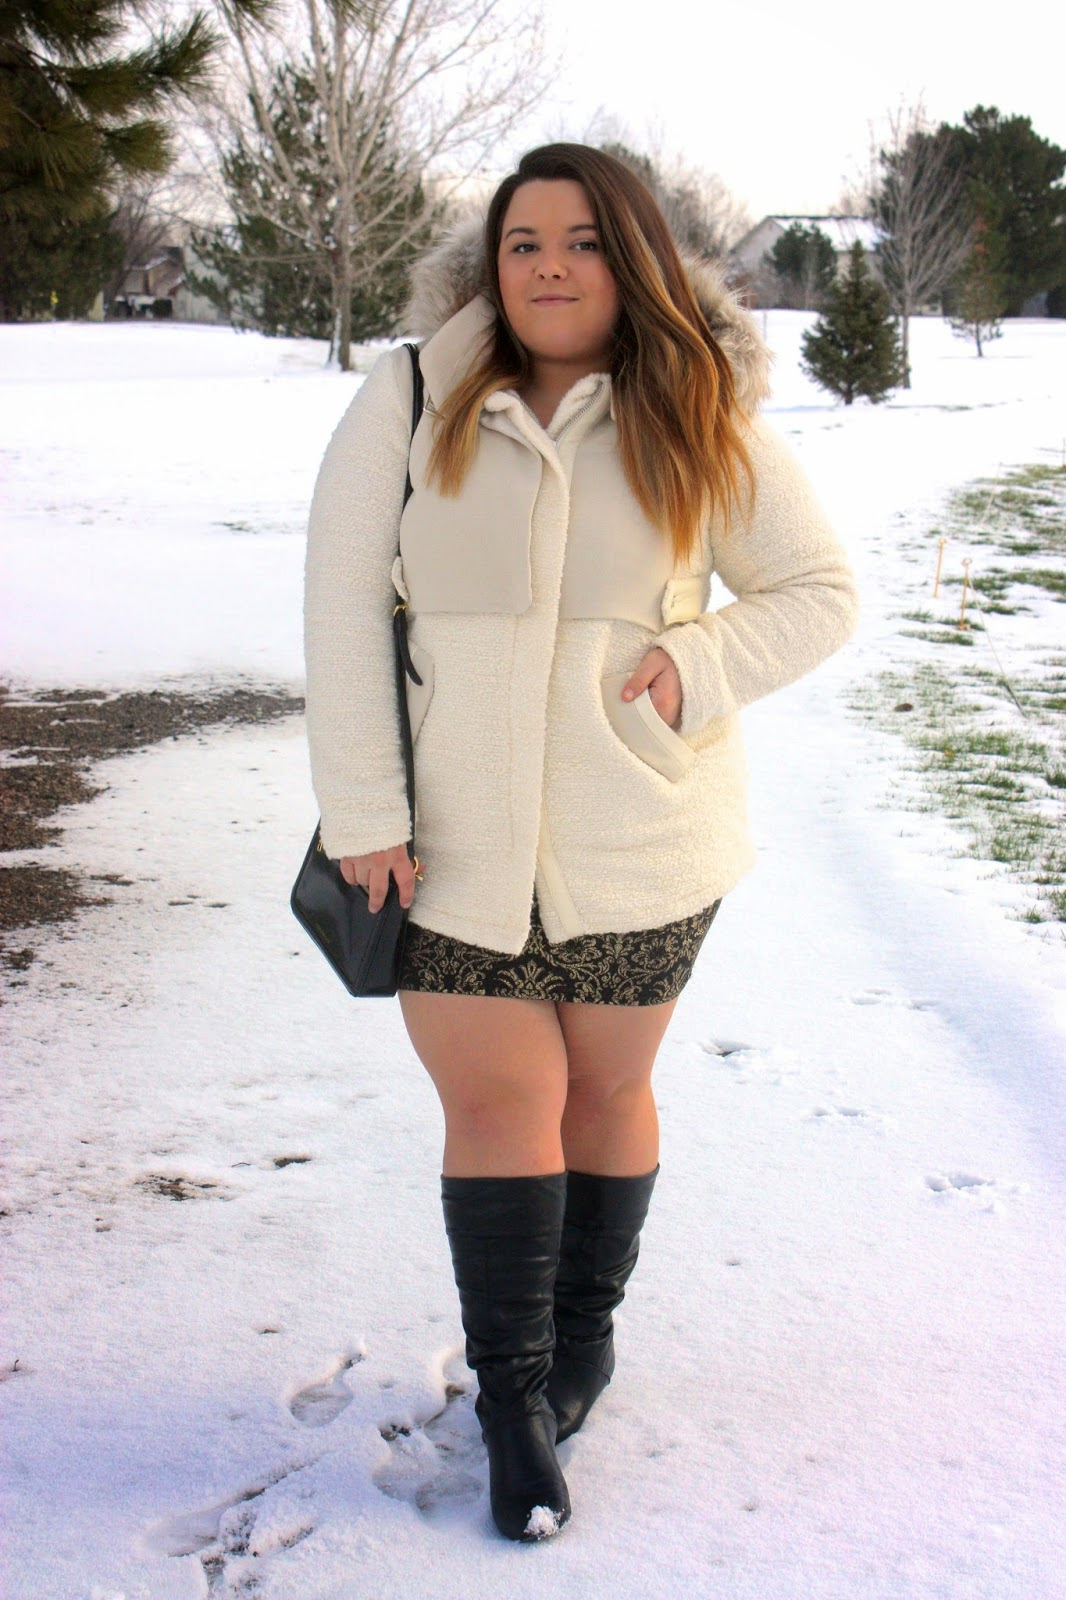 Winter Hues Natalie In The City A Chicago Plus Size Fashion Blog By Natalie Craig